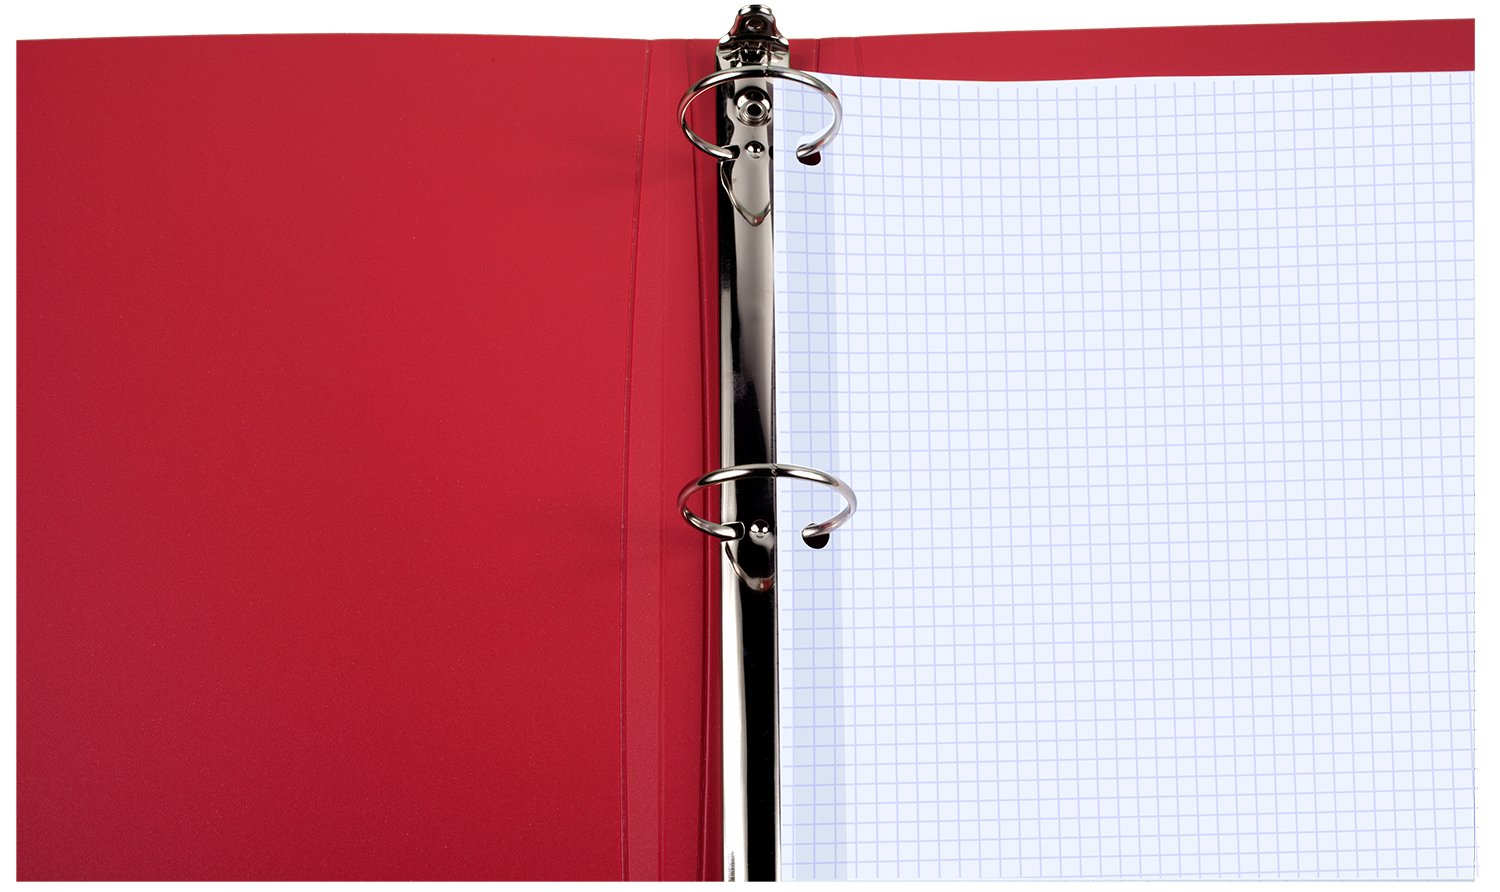 Mead Filler Paper, Loose Leaf Paper, Graph Ruled Paper, Q4, 100 Sheets, 10-1/2'' x 8'', Reinforced, White, 3 Pack (38040) by Mead (Image #5)